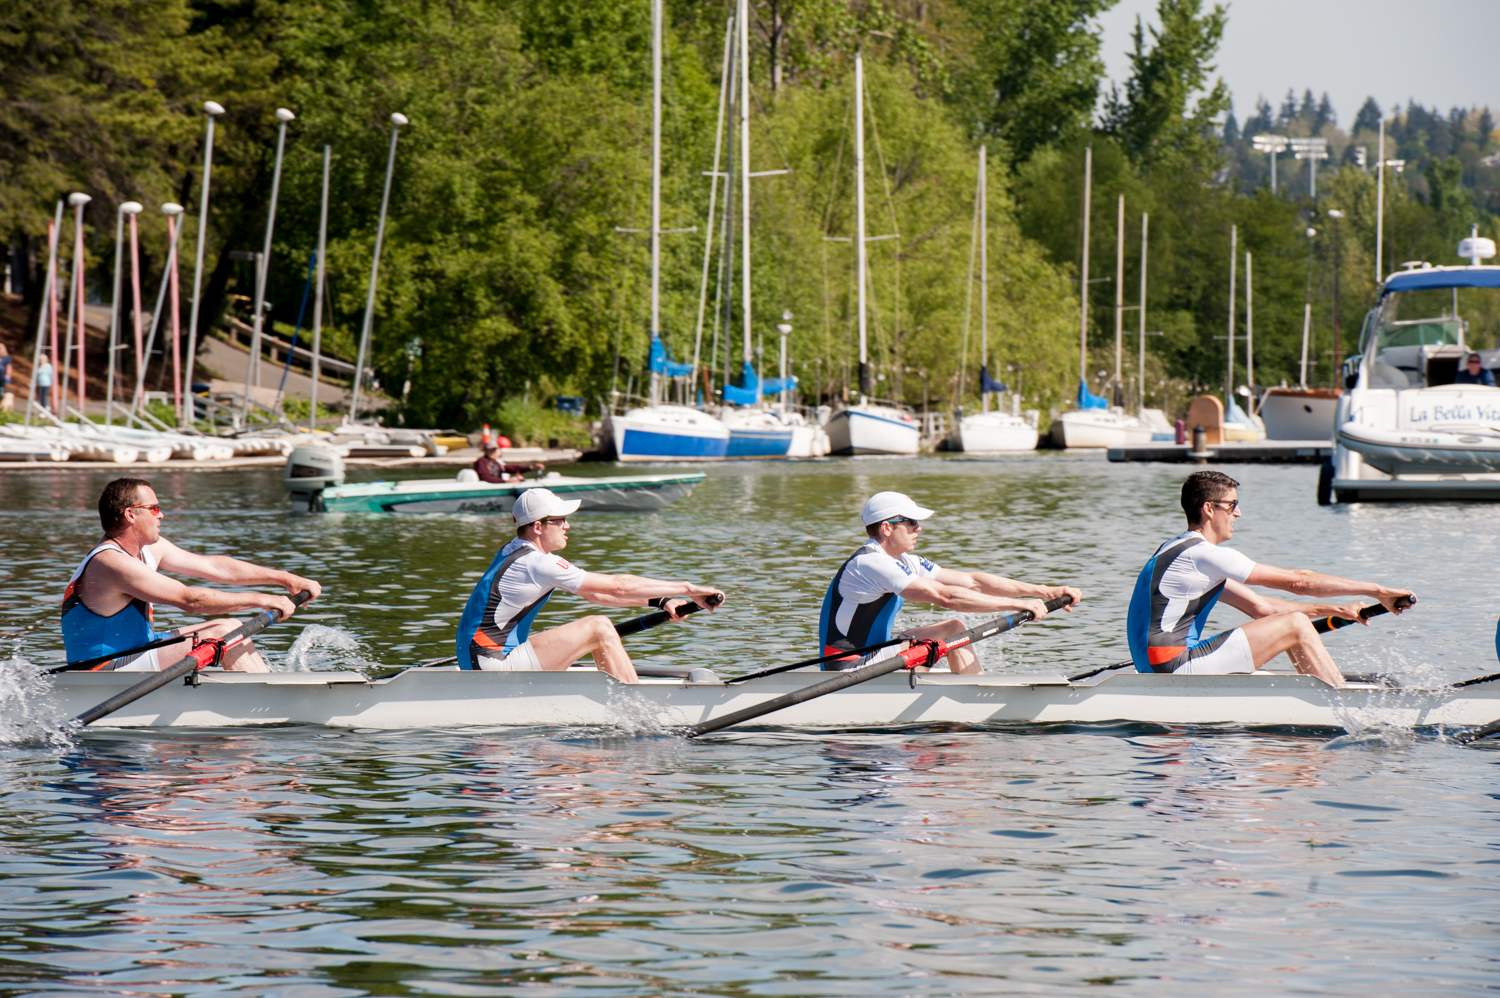 <p>Seattle Yacht Club Opening Day is always the first Saturday in May, and marked with by the Windermere Cup crew races, sailboat races and the Opening Day Parade. It's easily become the nation's largest regional cel